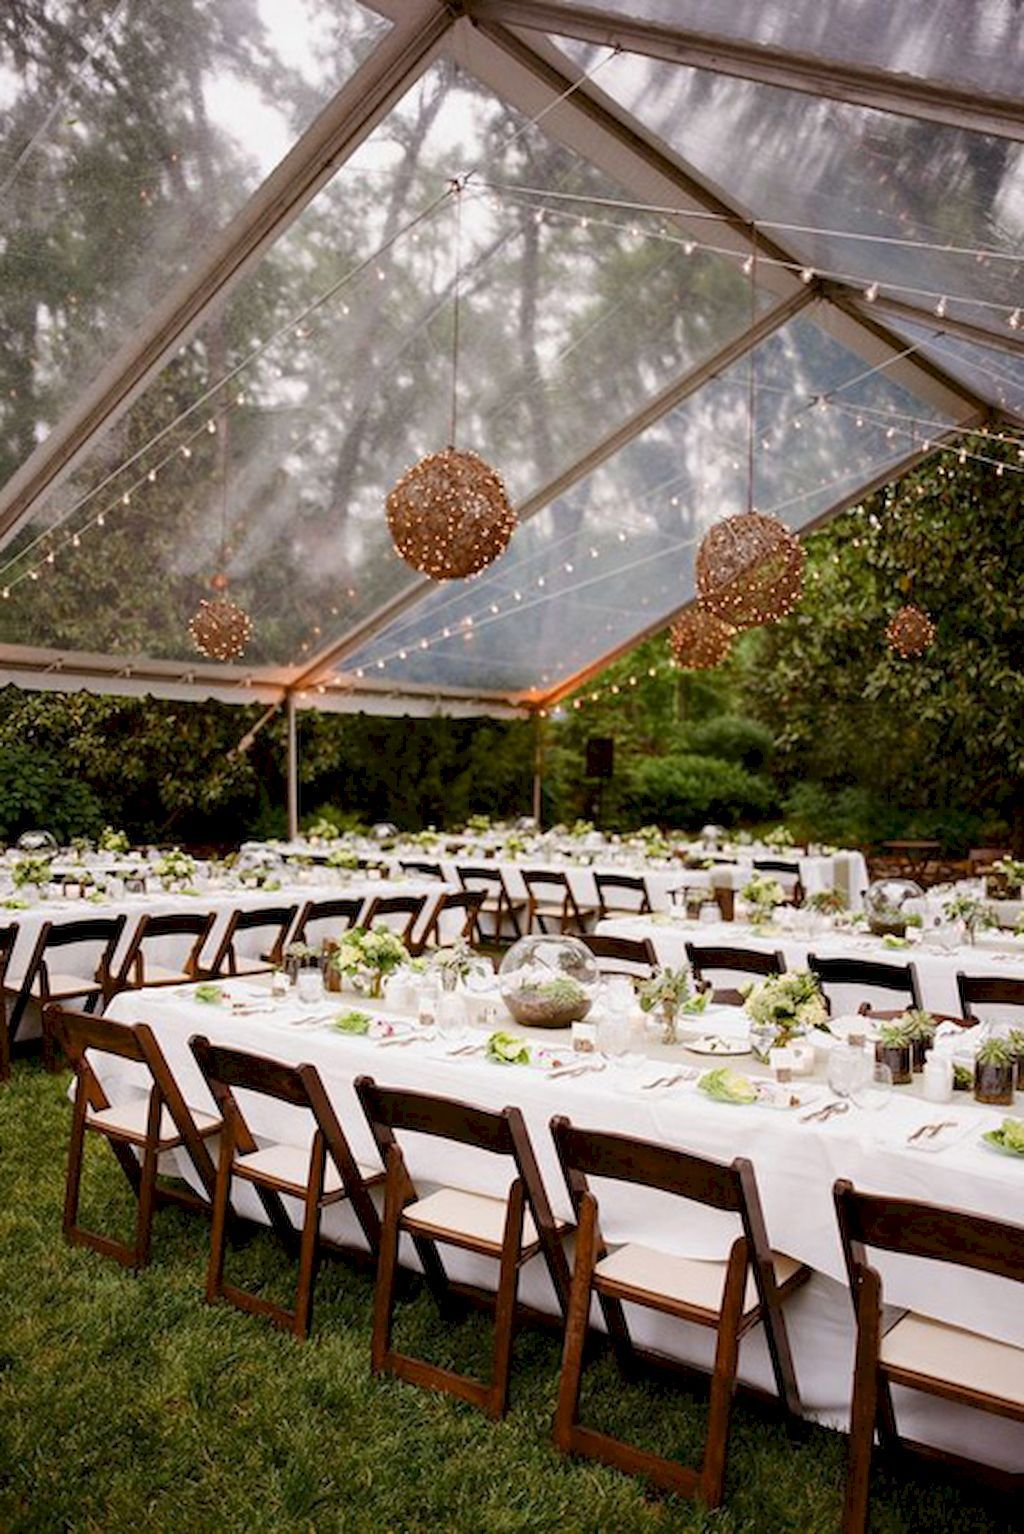 And simple by decorating the aisle and archway with natural greenery. 48 Elegant Outdoor Wedding Decor Ideas on A Budget ...